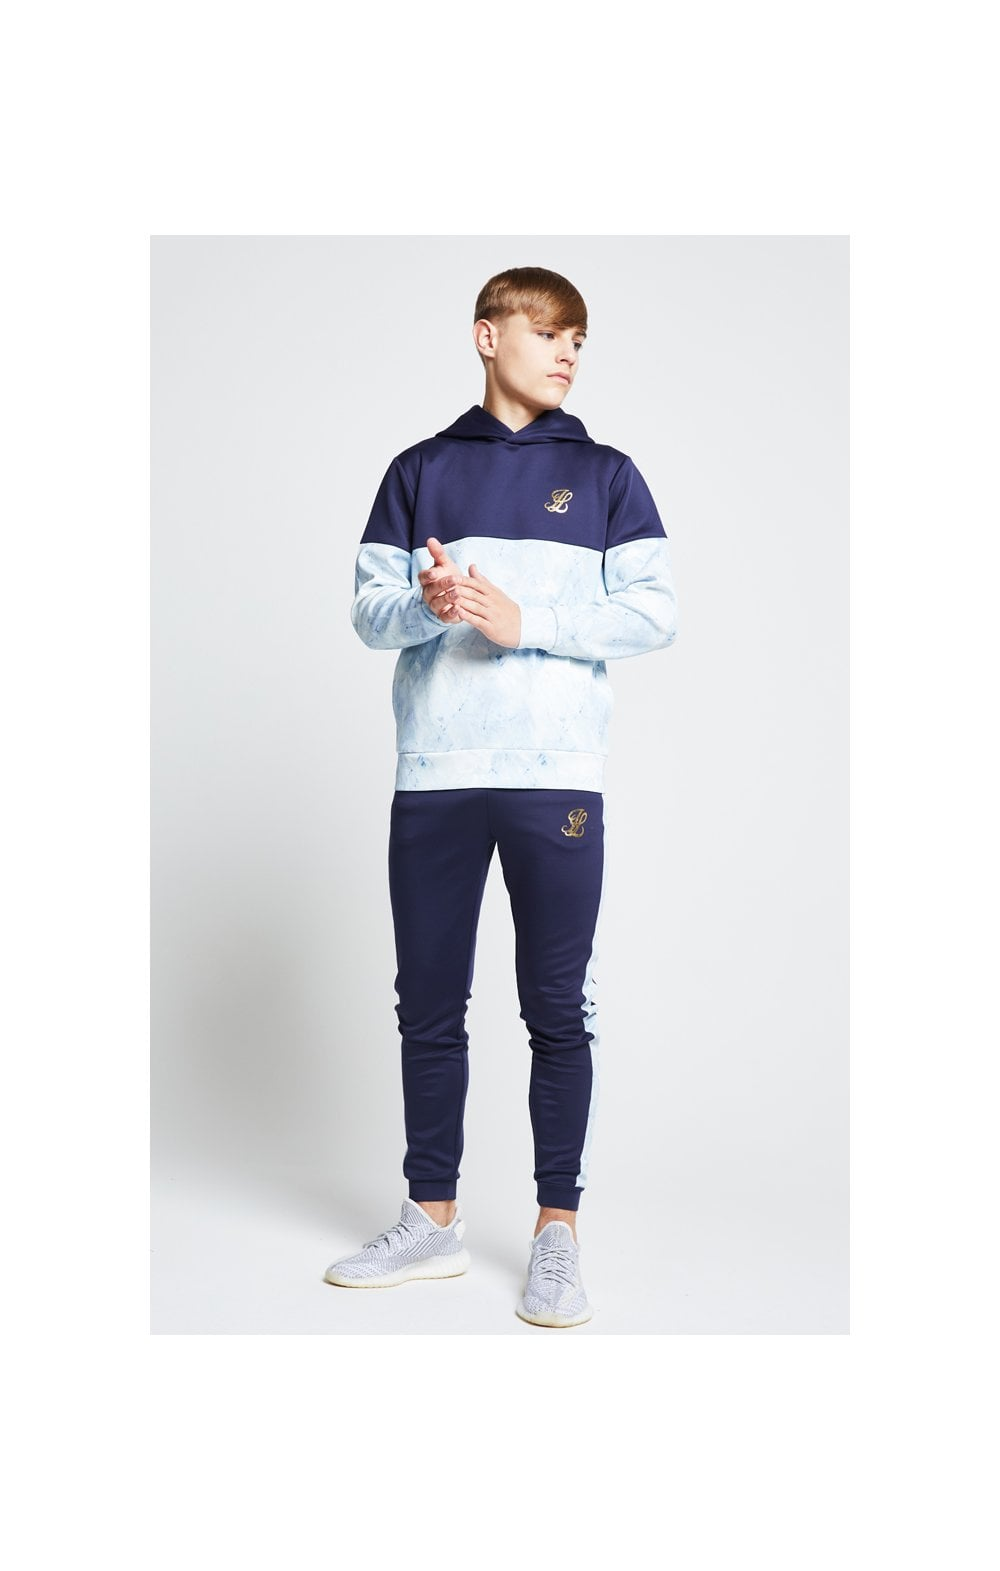 Illusive London Cut & Sew Marble Overhead Hoodie - Navy & Marble (2)